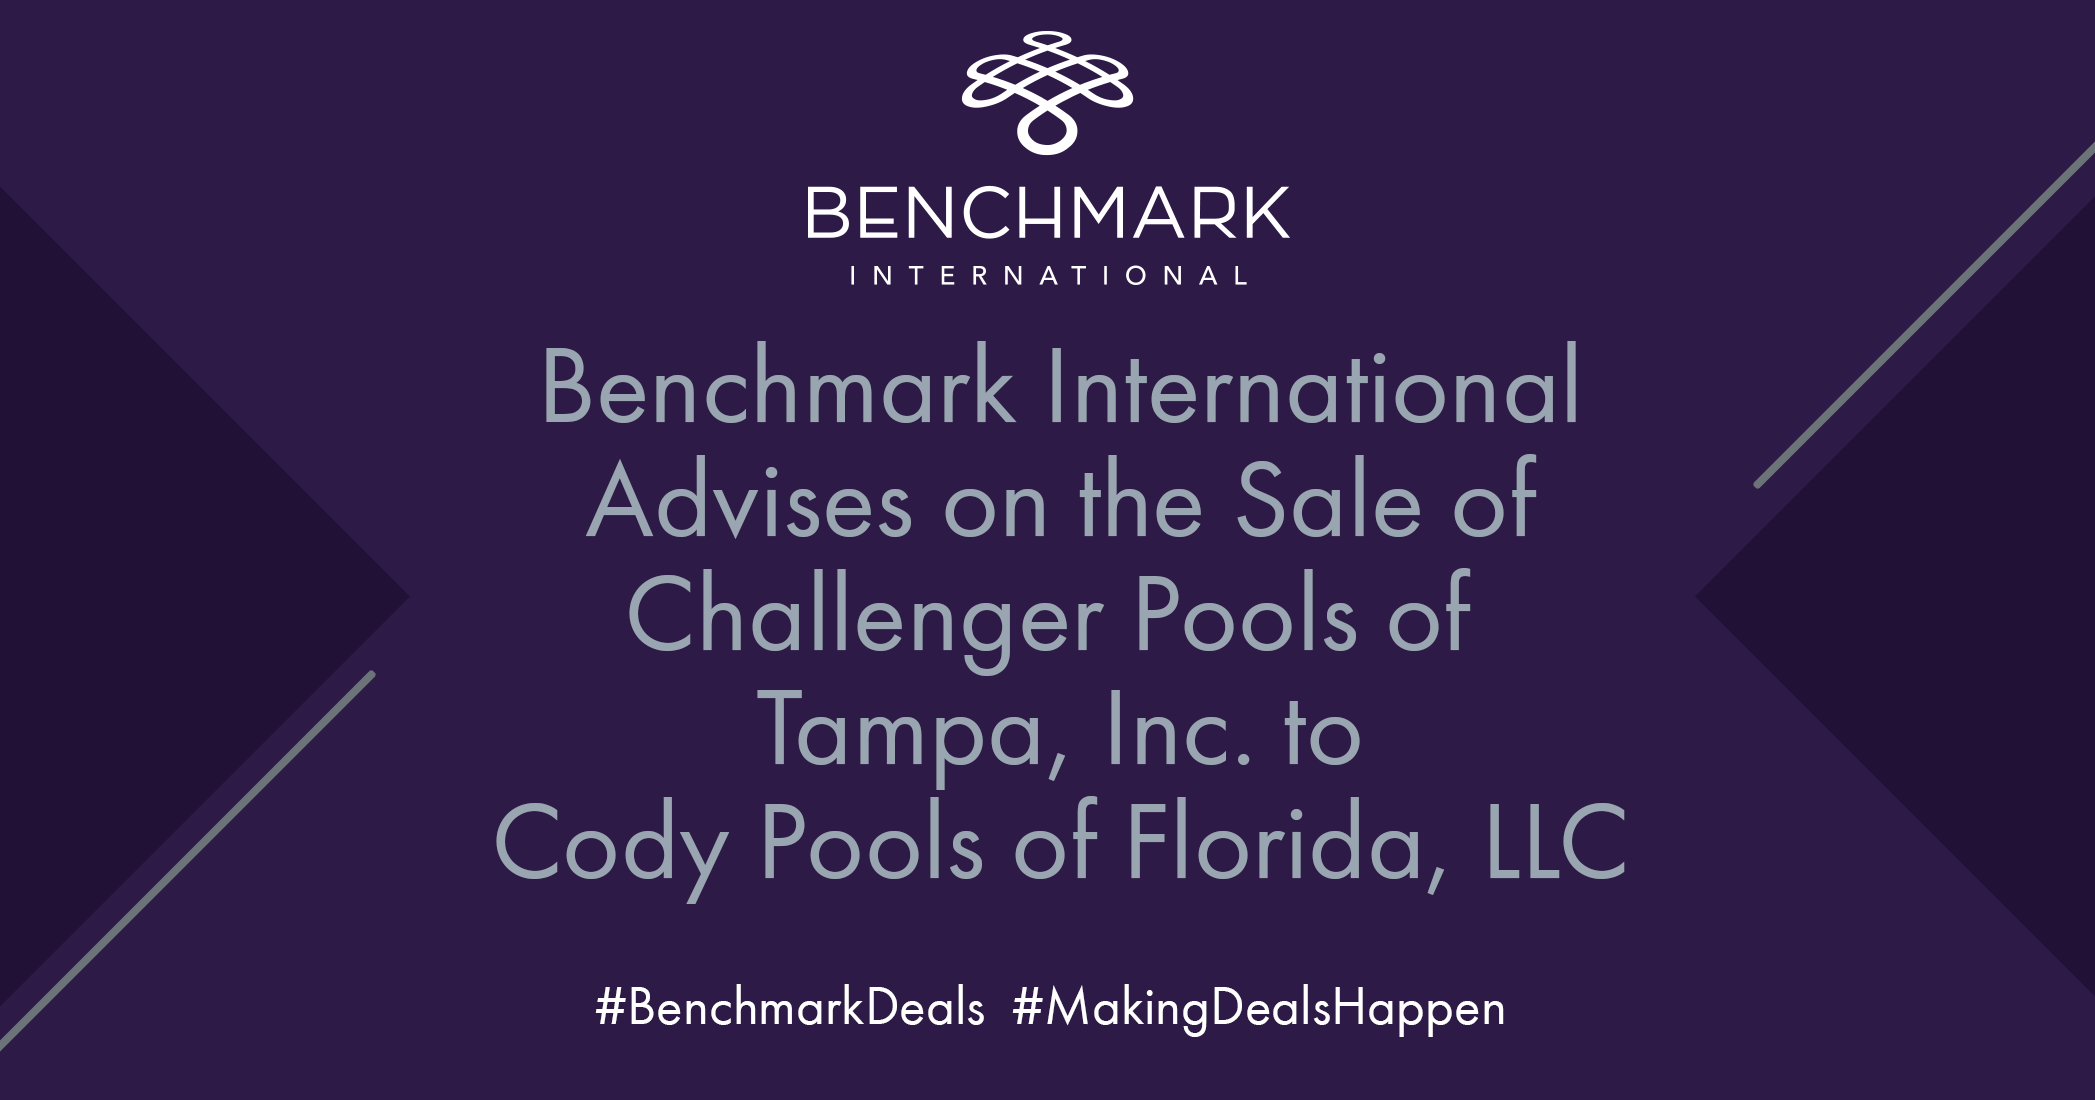 BENCHMARK INTERNATIONAL FACILITATES THE SALE OF CHALLENGER POOLS OF TAMPA TO CODY POOLS OF FLORIDA.